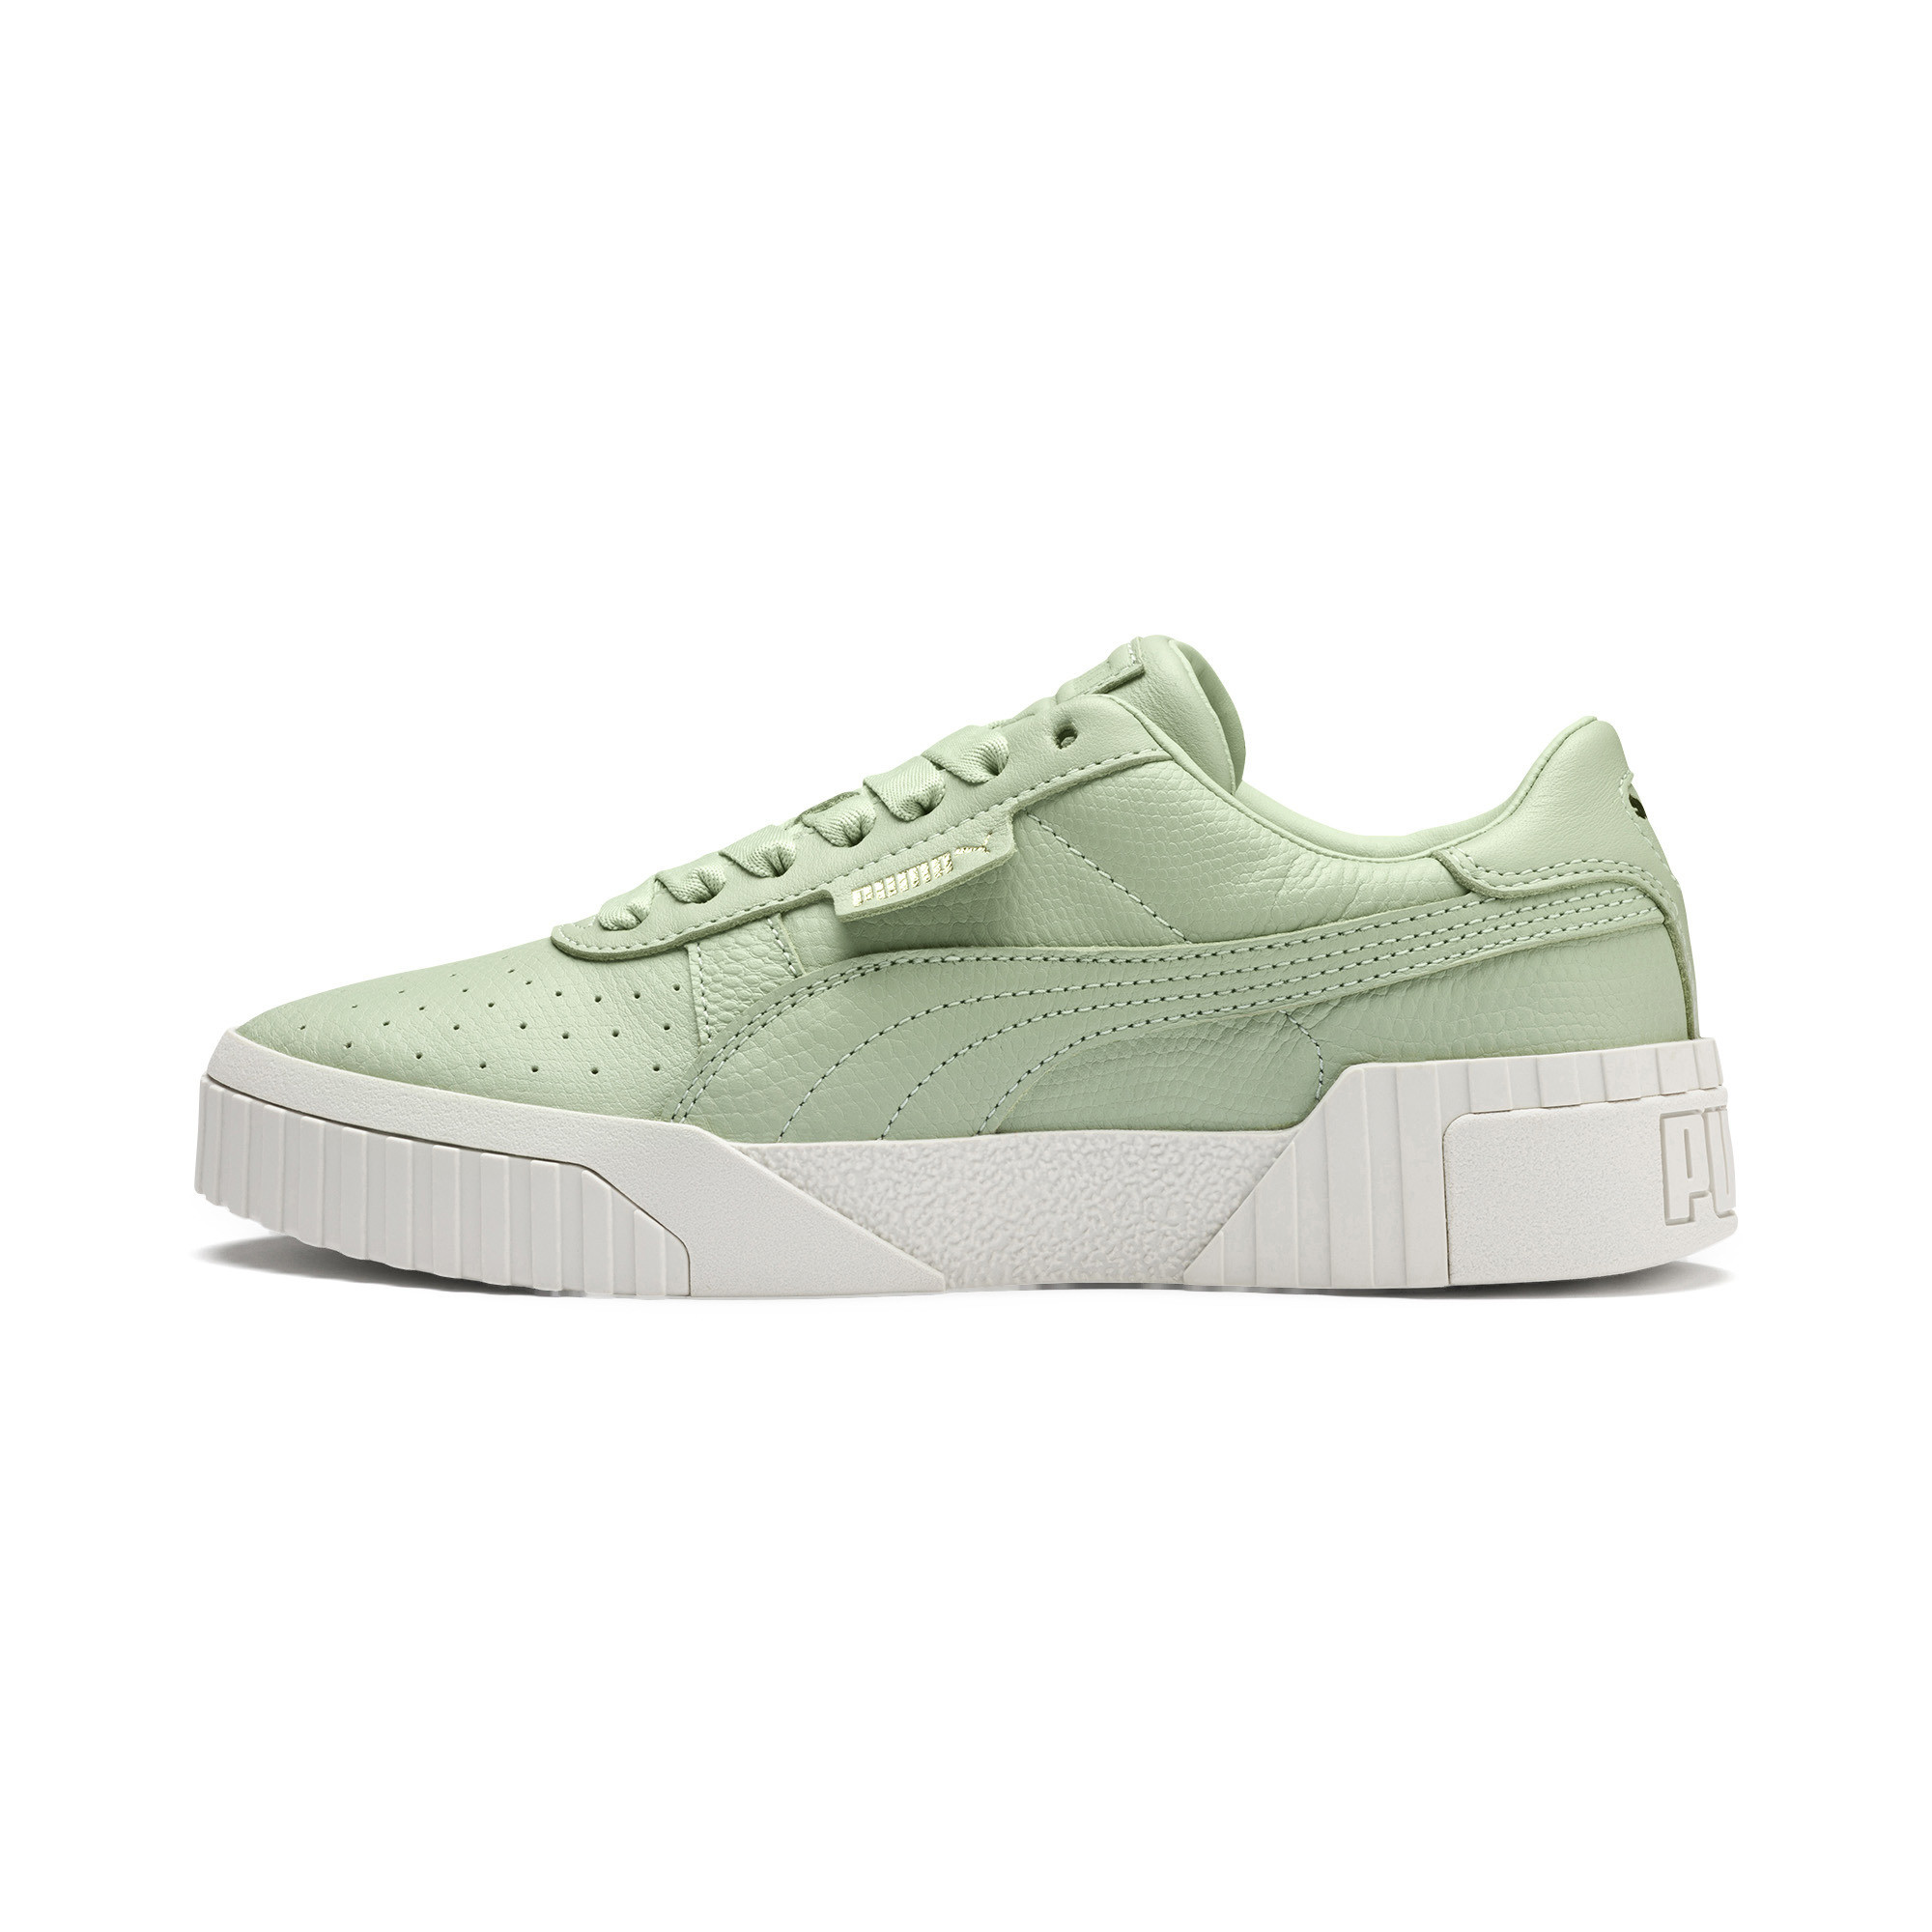 PUMA-Cali-Emboss-Women-039-s-Sneakers-Women-Shoe-Evolution thumbnail 4